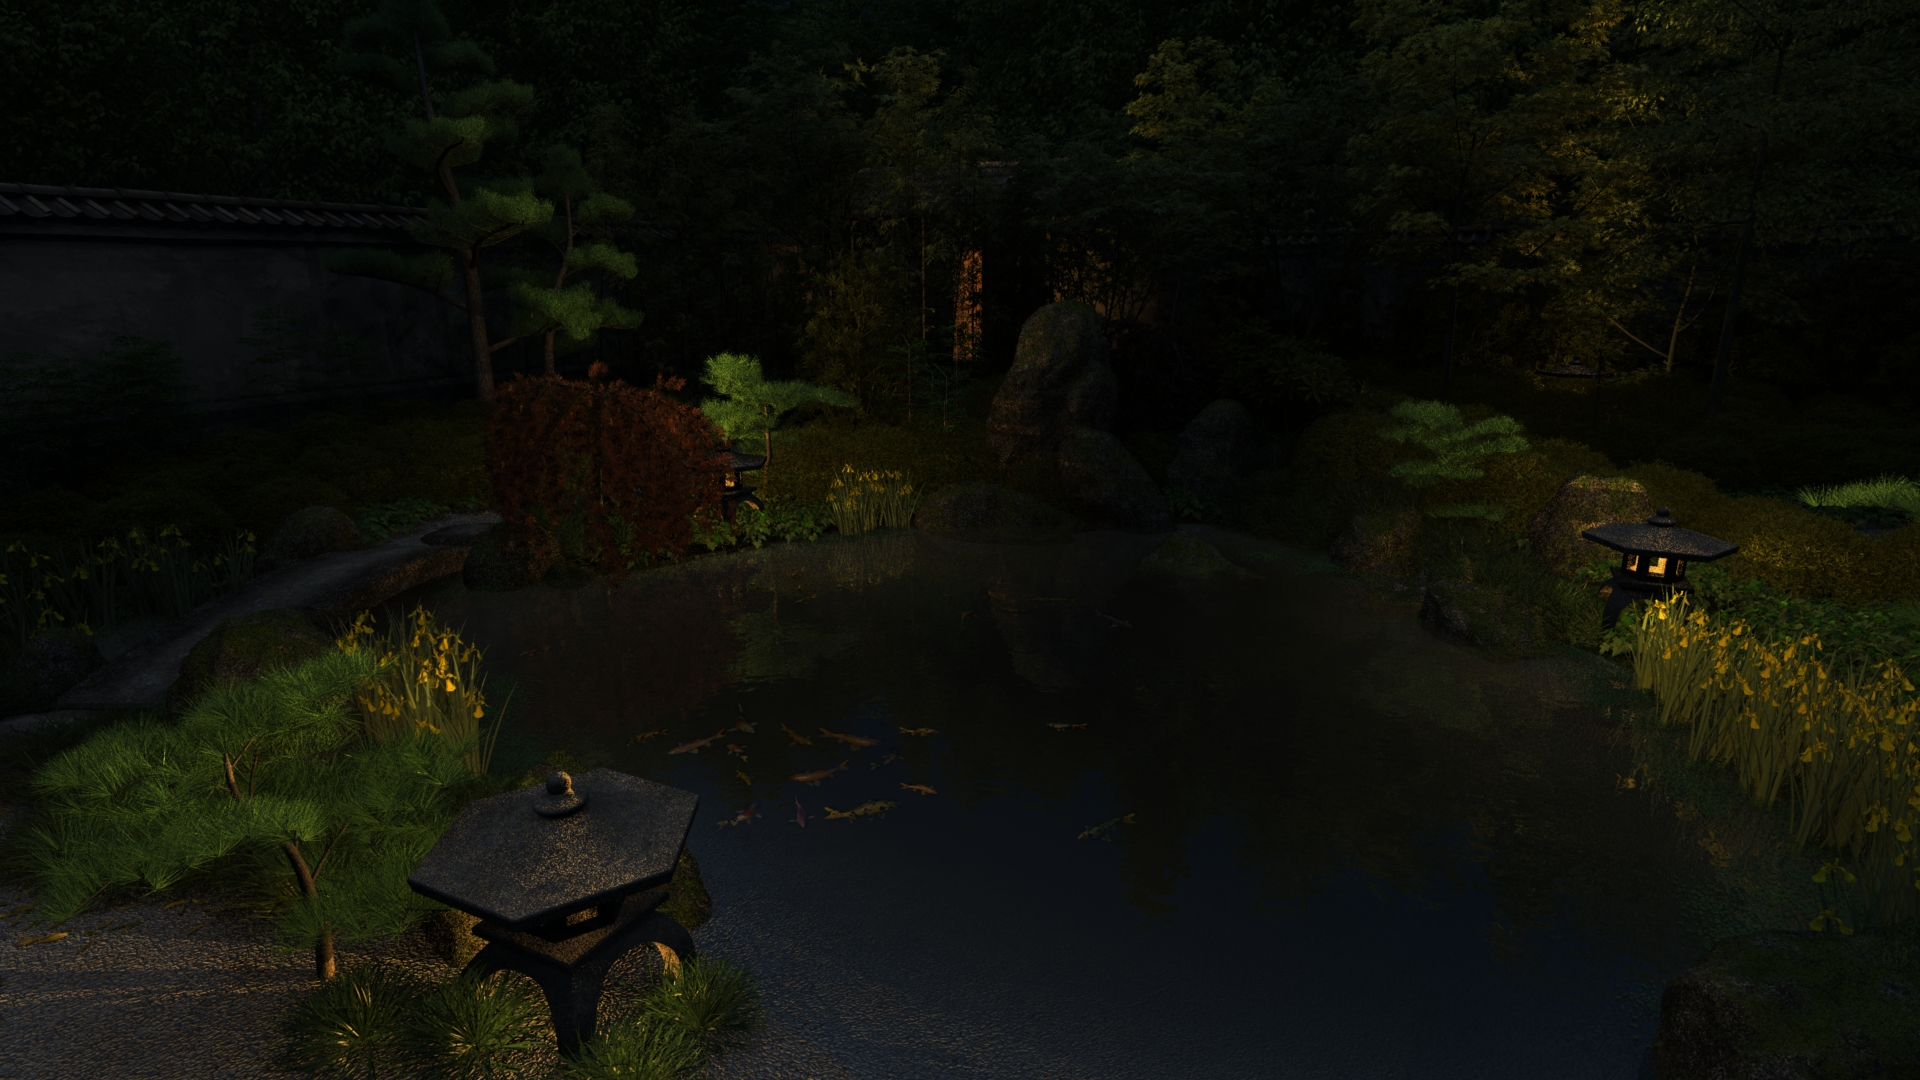 Best Wallpaper Night Japanese Garden - japanese_tea_garden_night_by_jdaughtry-d309y9s  Graphic-59777.jpg